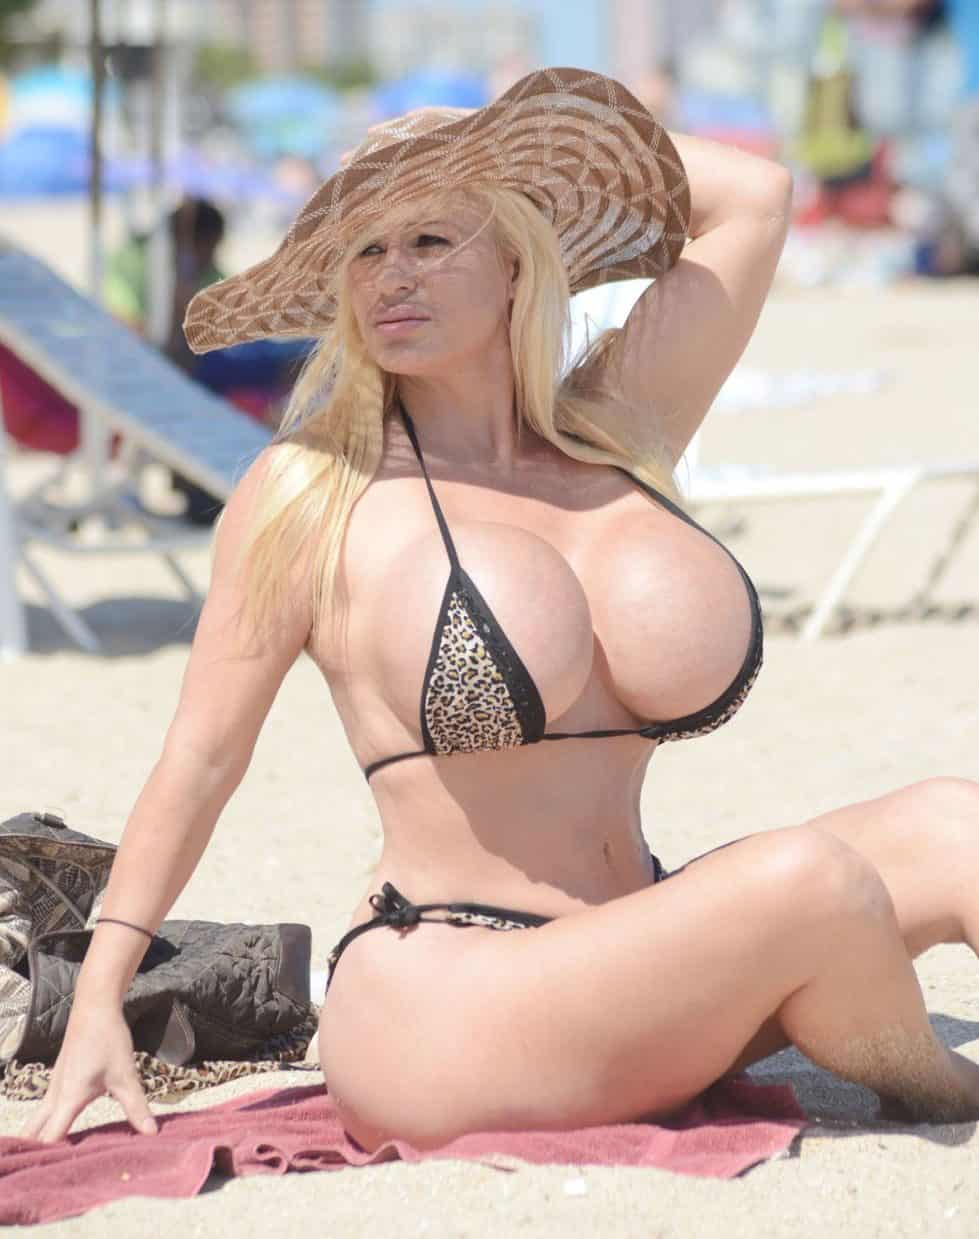 Women With the Biggest Boobs in the World - Lacey Wildd